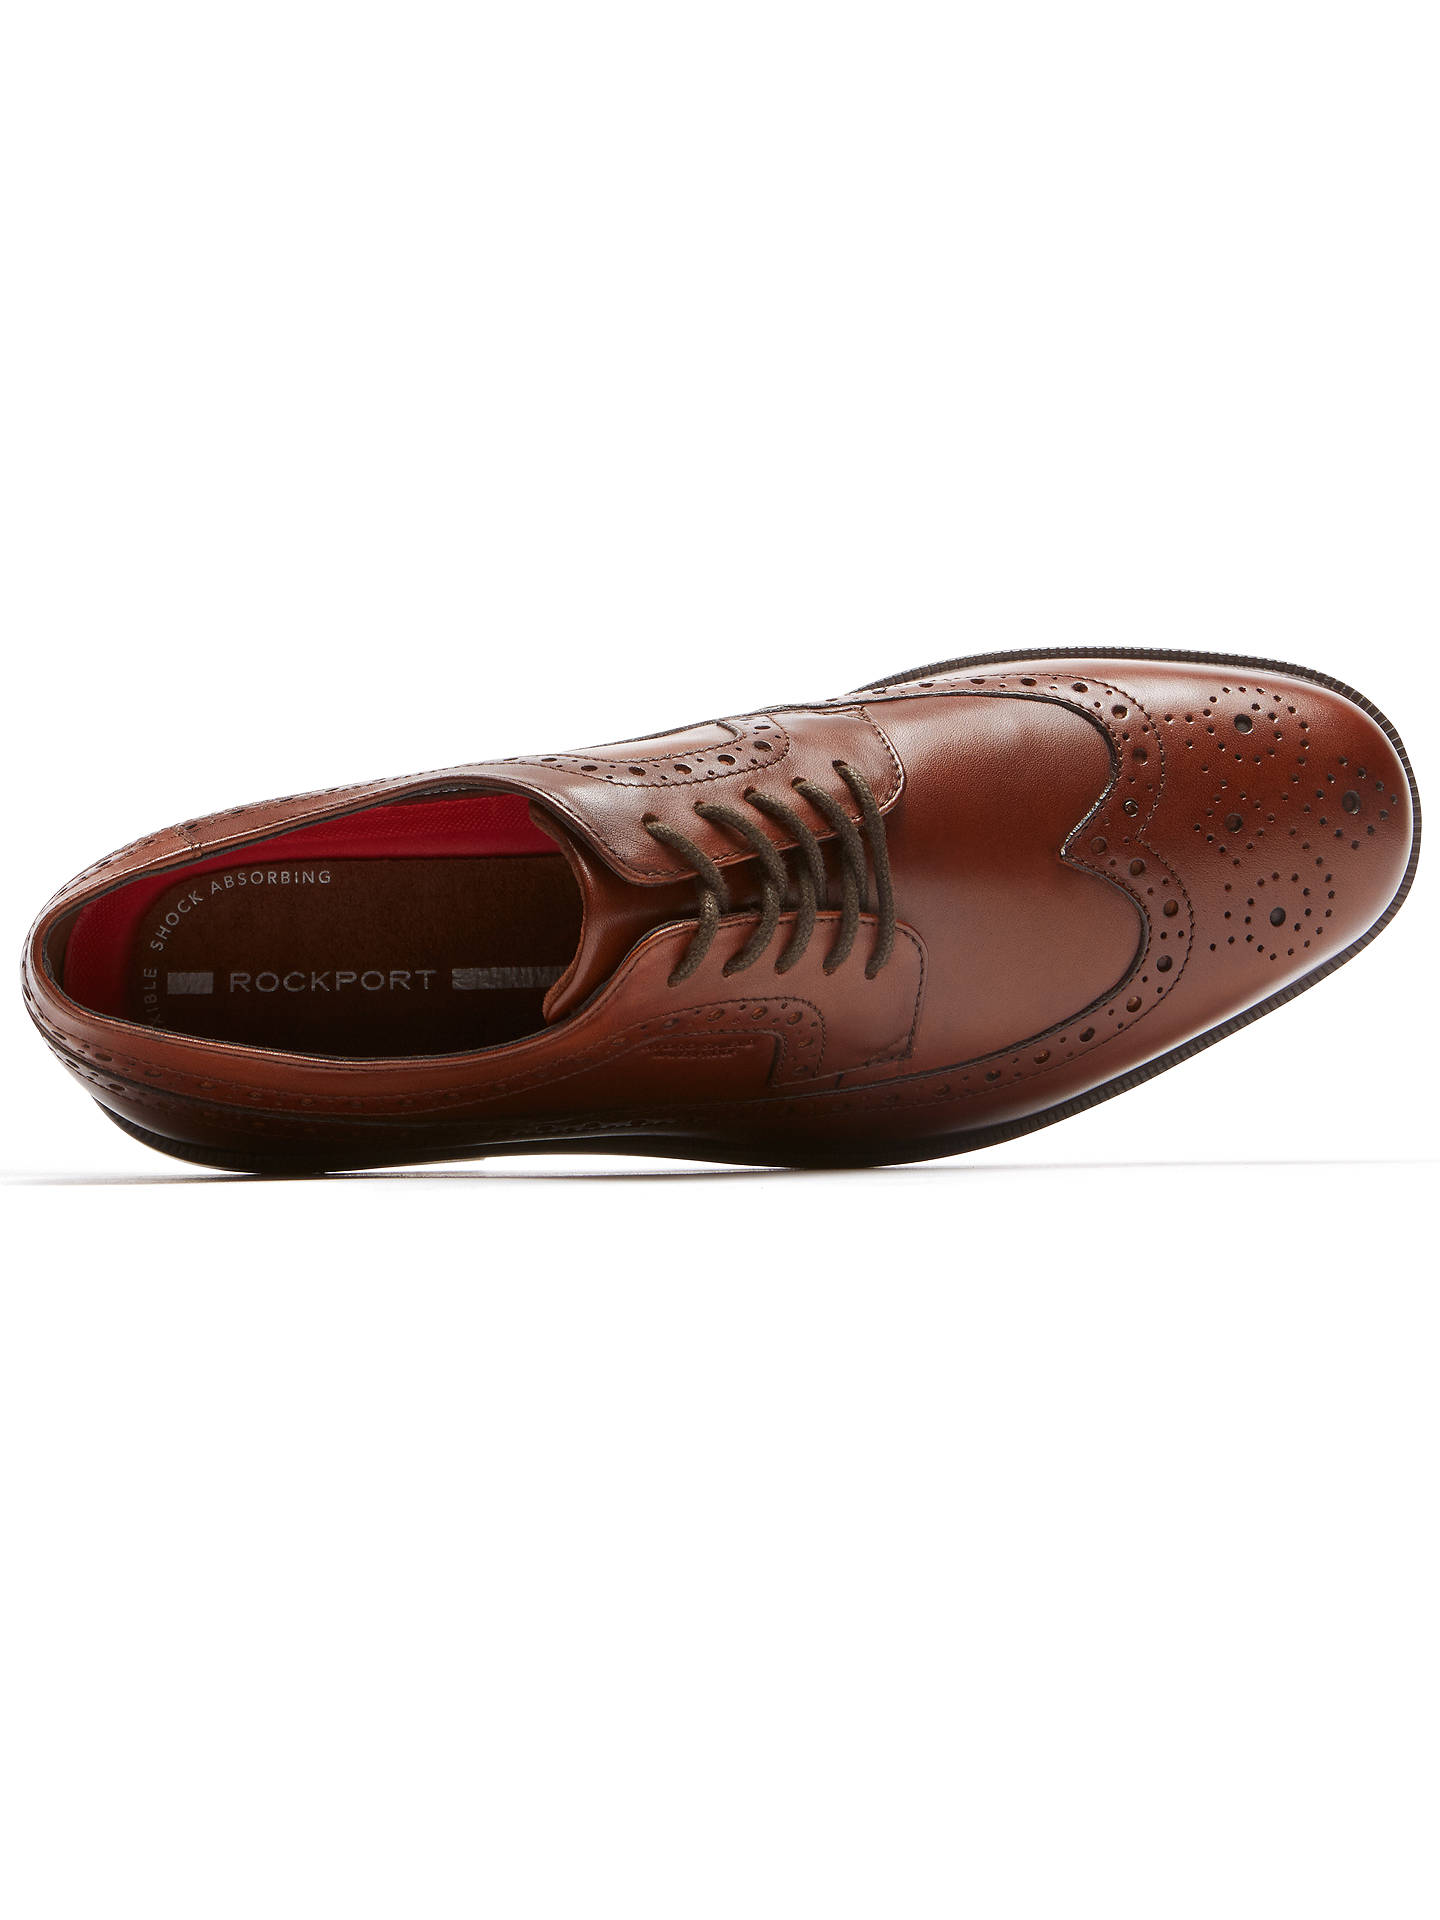 BuyRockport Esssential Details 2 Waterproof Wingtip Brouges, Tan, 7 Online at johnlewis.com